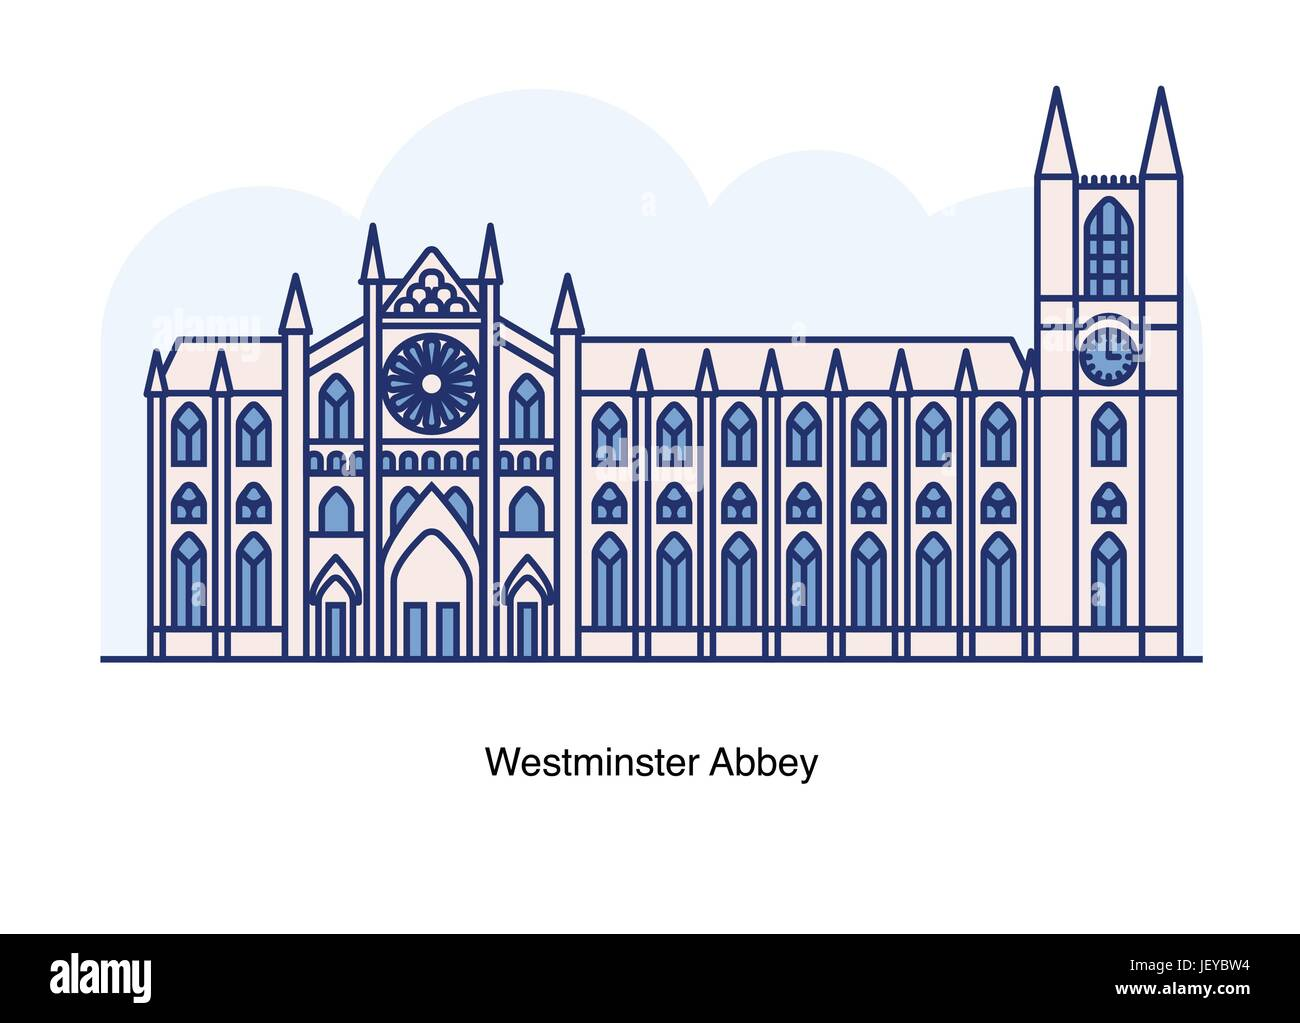 Vector line illustration of Westminster Abbey, London, England. - Stock Image